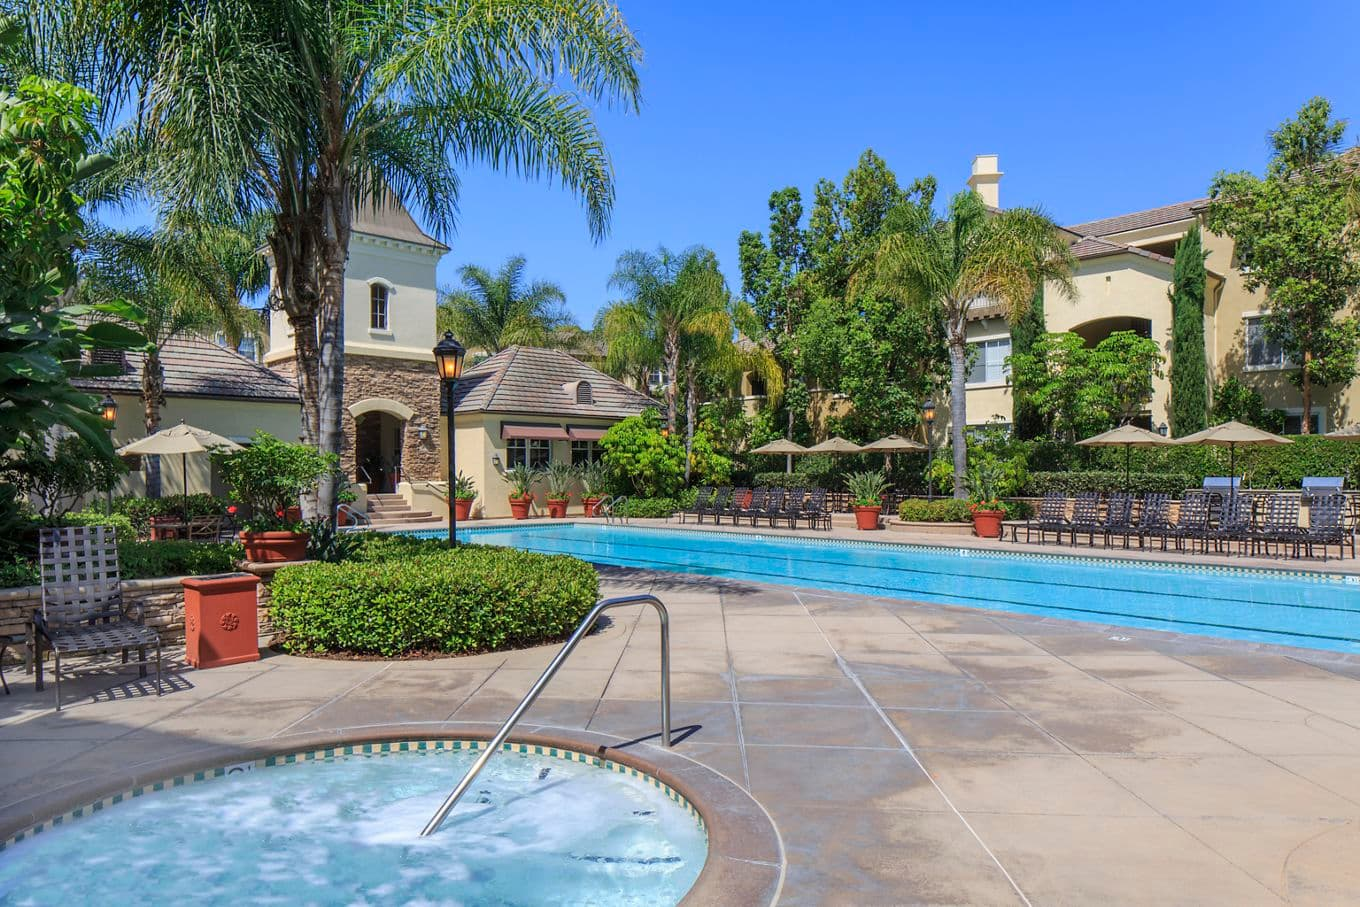 Pool and Spa view at Brittany Apartment Homes in Irvine, CA.